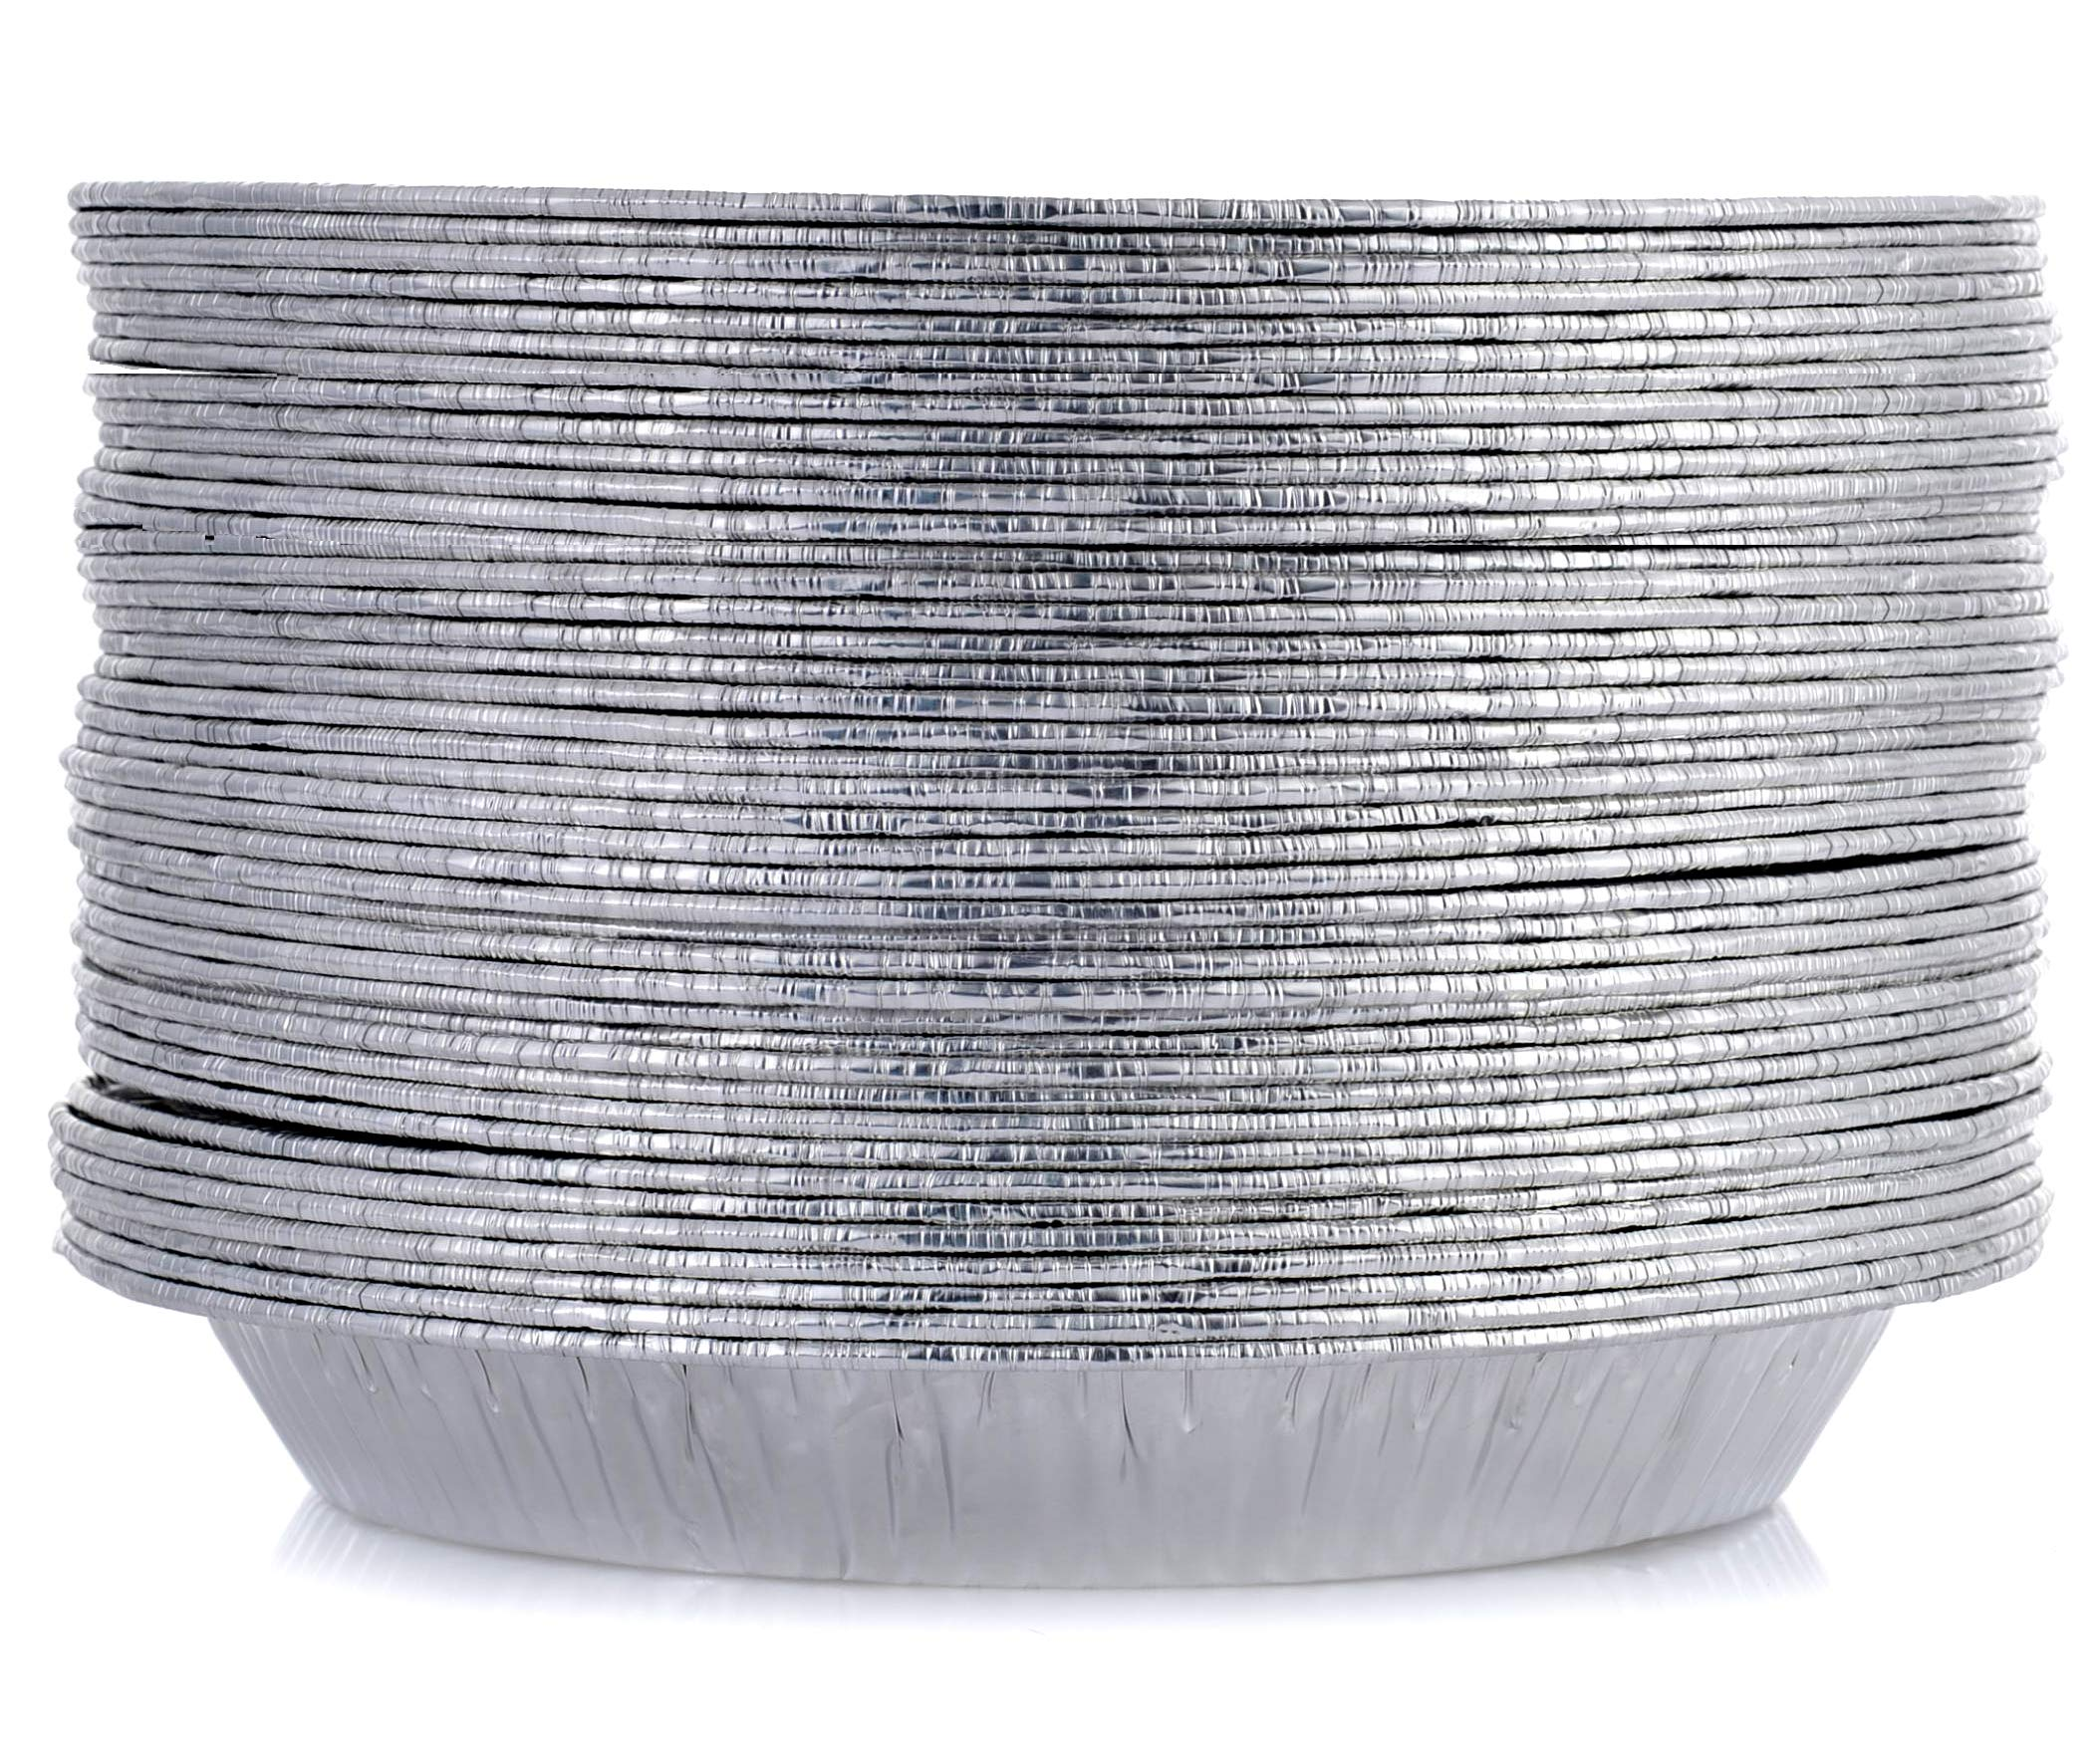 [50 Pack - 9'' Size] Pie Pans - HEAVY-DUTY - Disposable Aluminum Foil Pie Plates, Made in USA by DOBI